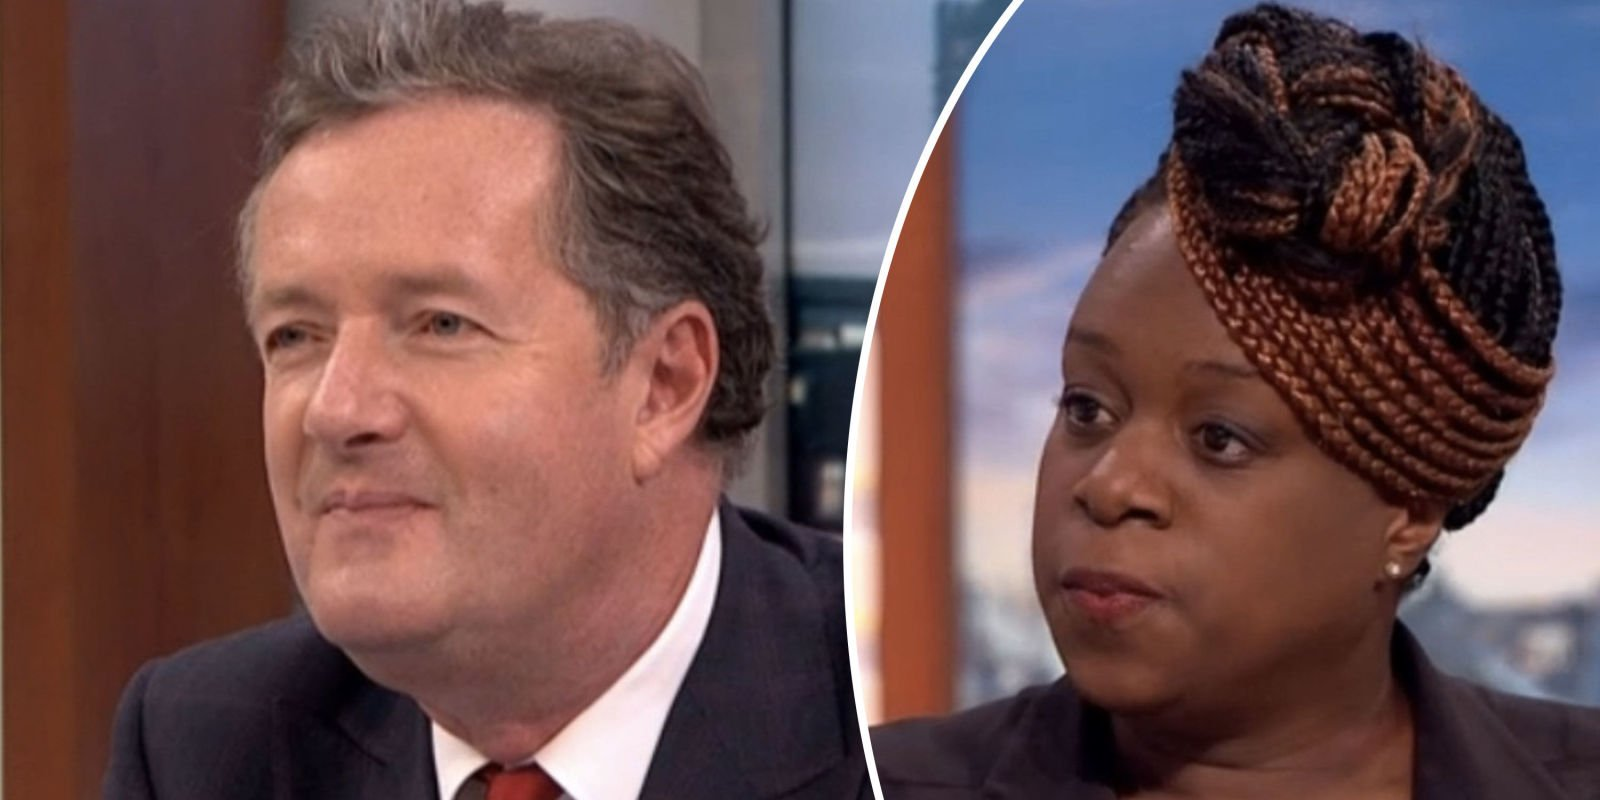 EastEnders star Tameka Empson flirts up a storm with Piers Morgan on Good Morning Britain